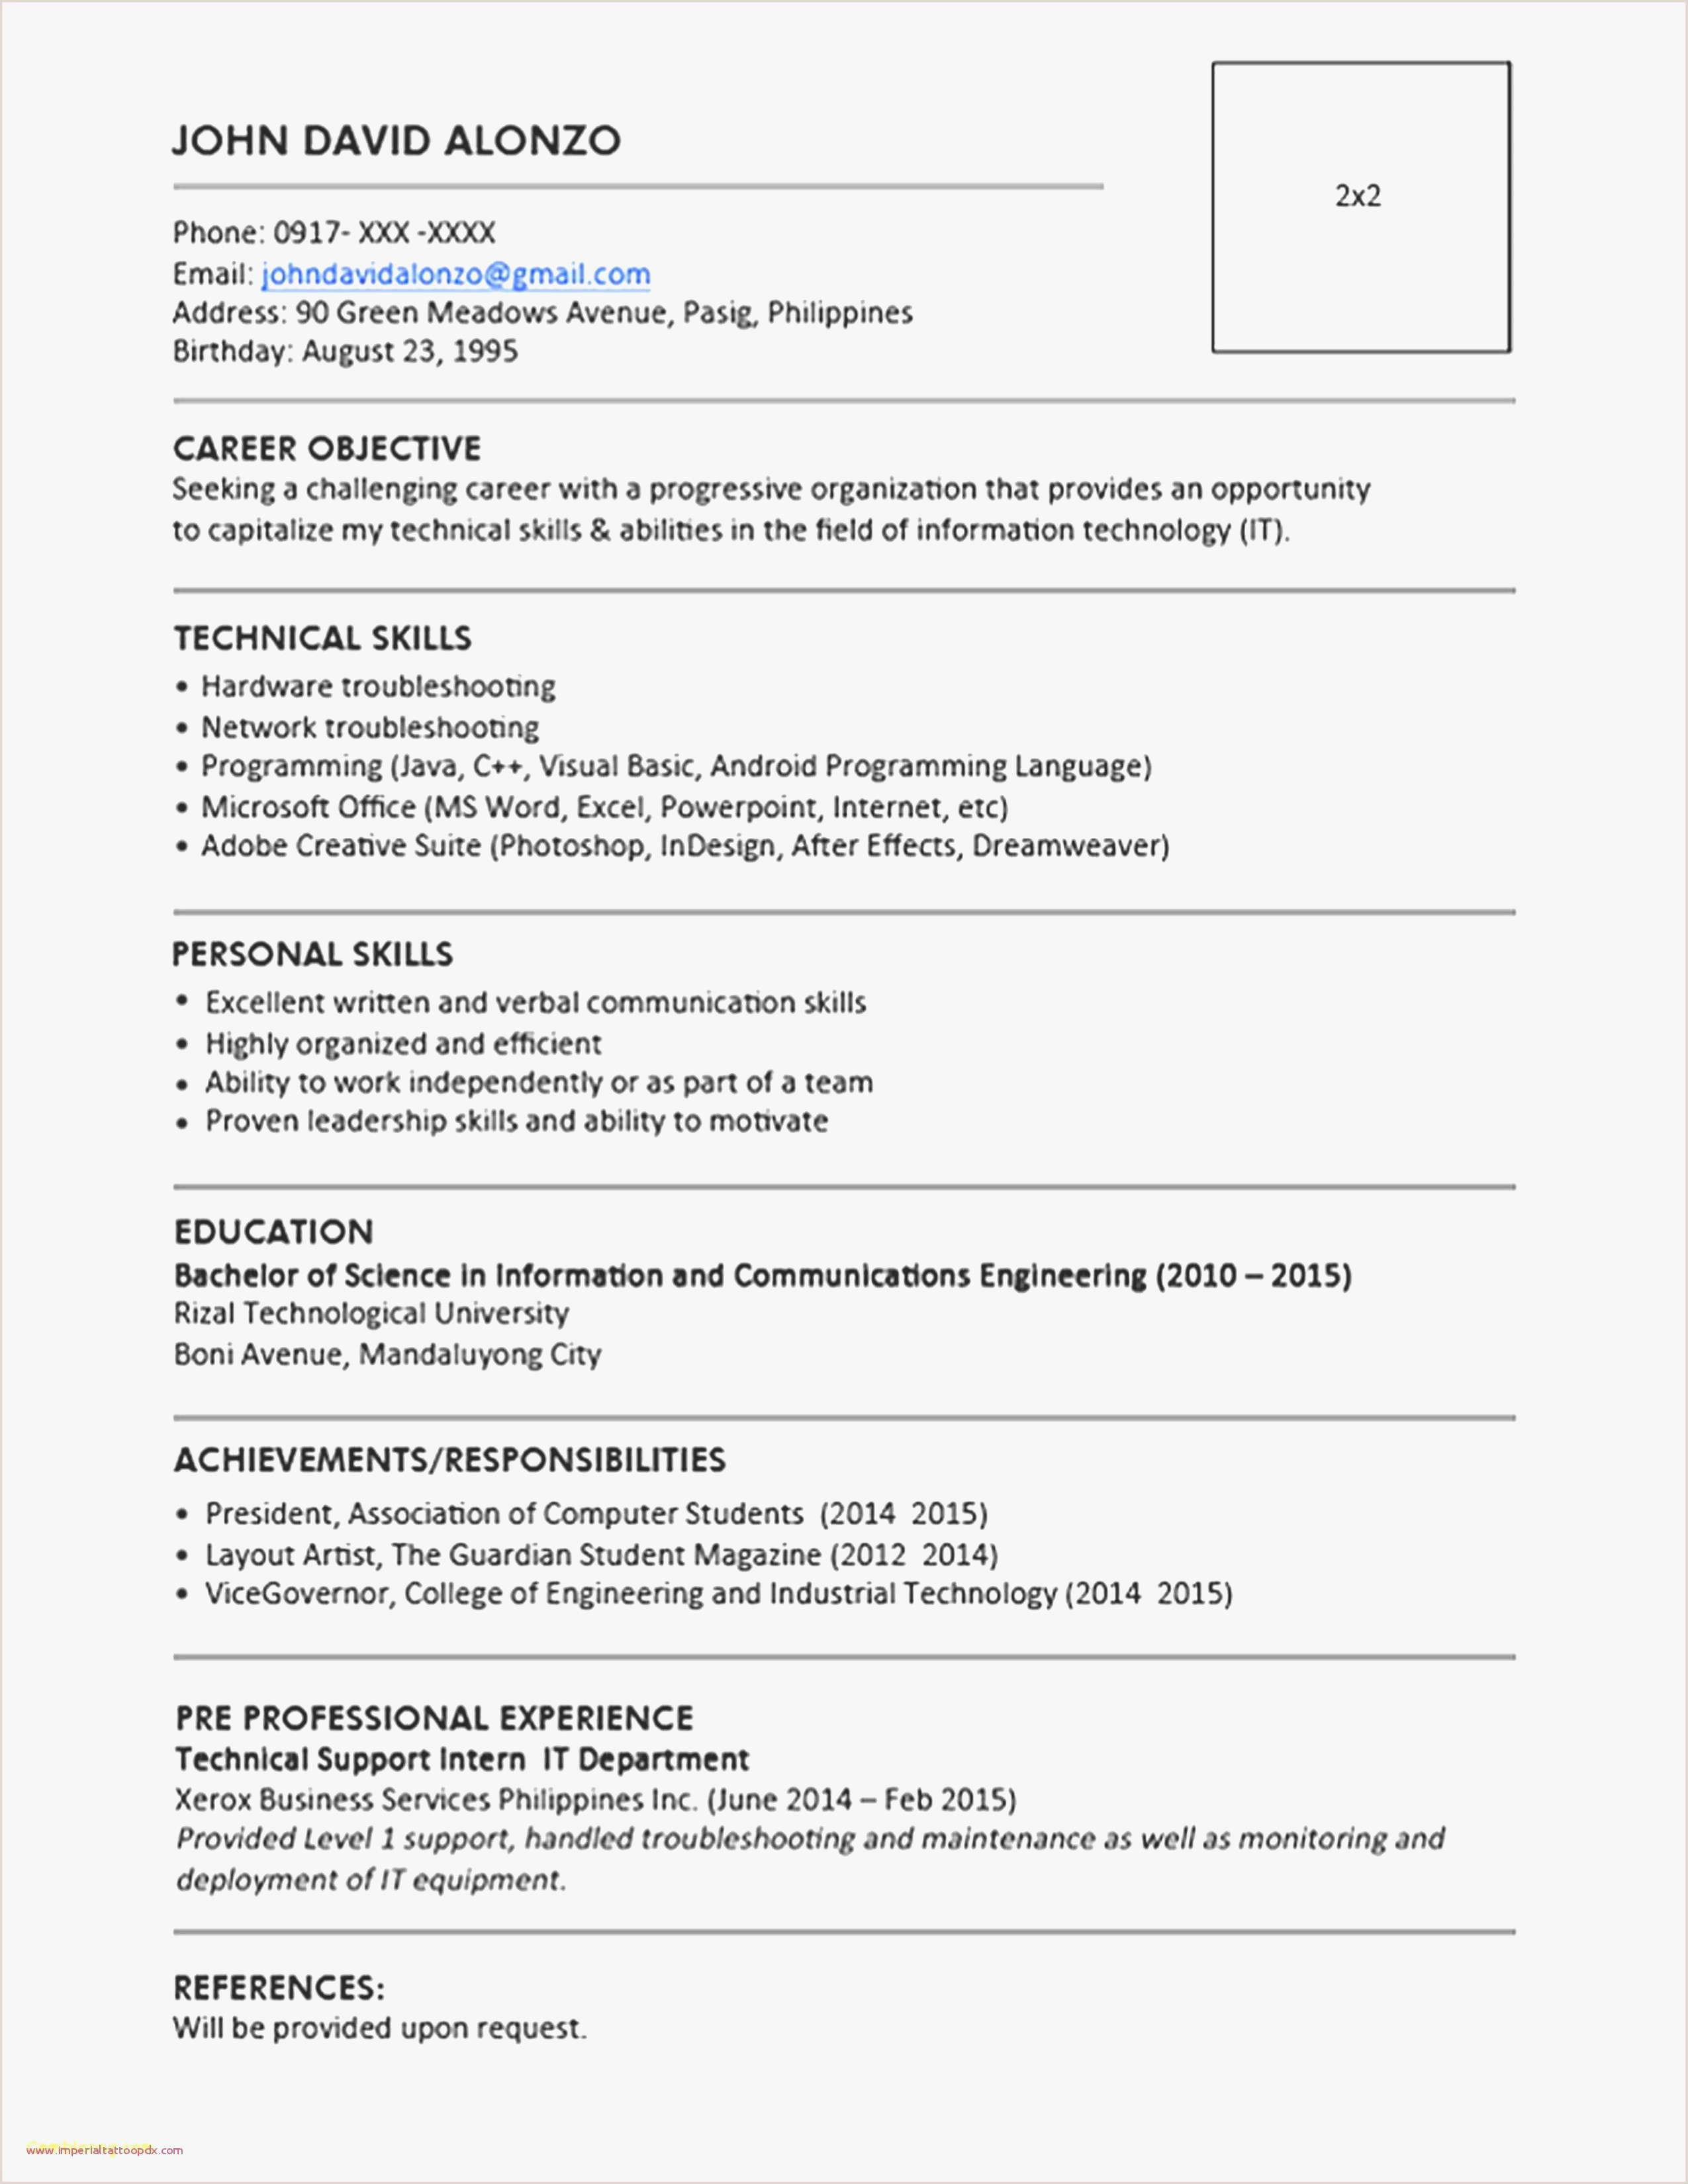 Latest Cv format for Experienced Student Simple Cv Template Inspirierend Cv Layout Template